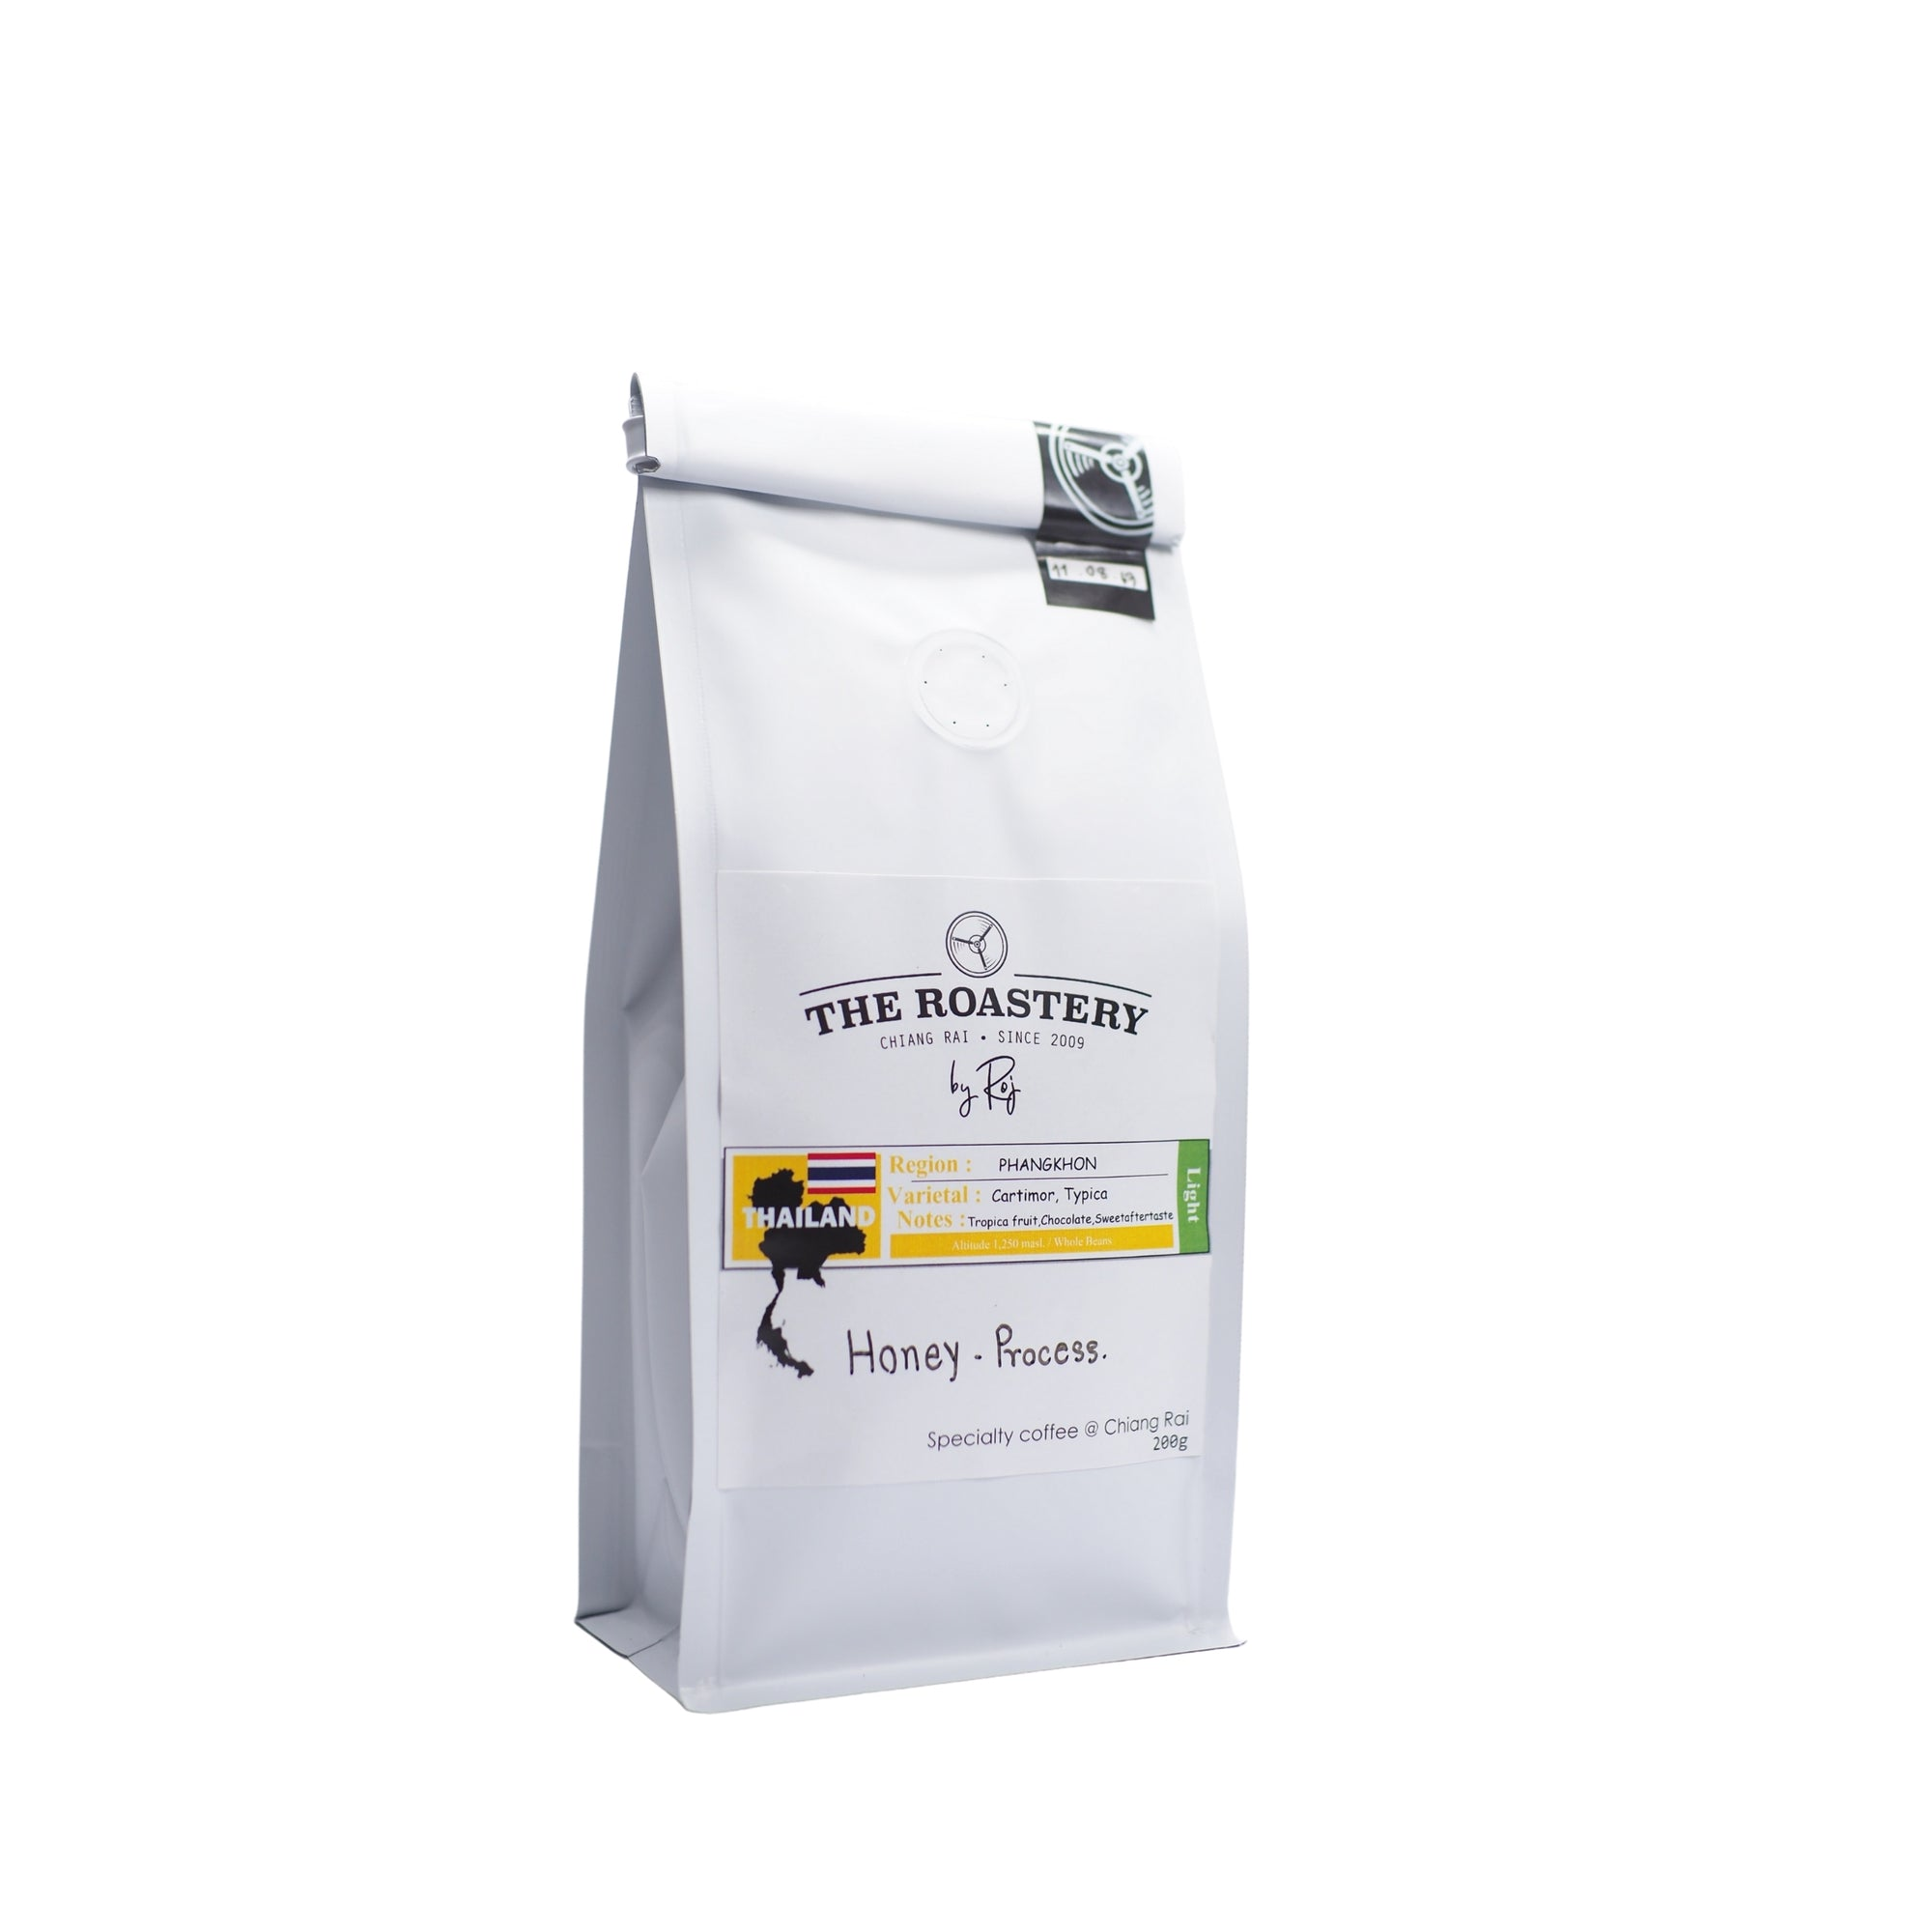 PhangKhon Honey Process Light Roast 200g